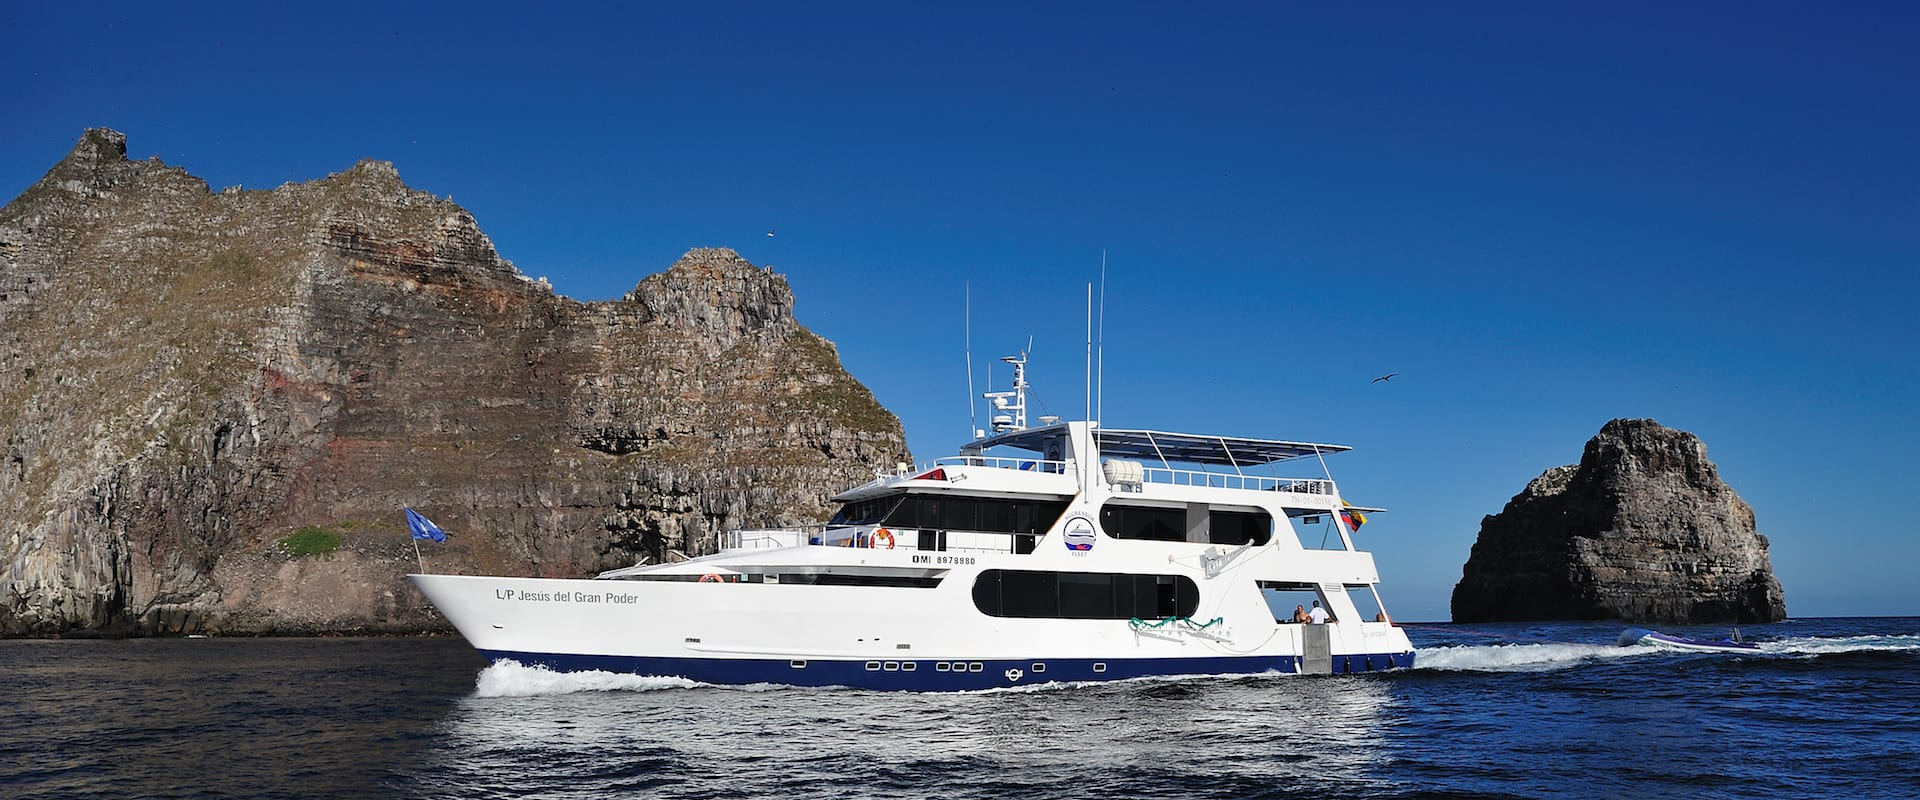 Aggressor Liveaboards - Now 37% off many trips